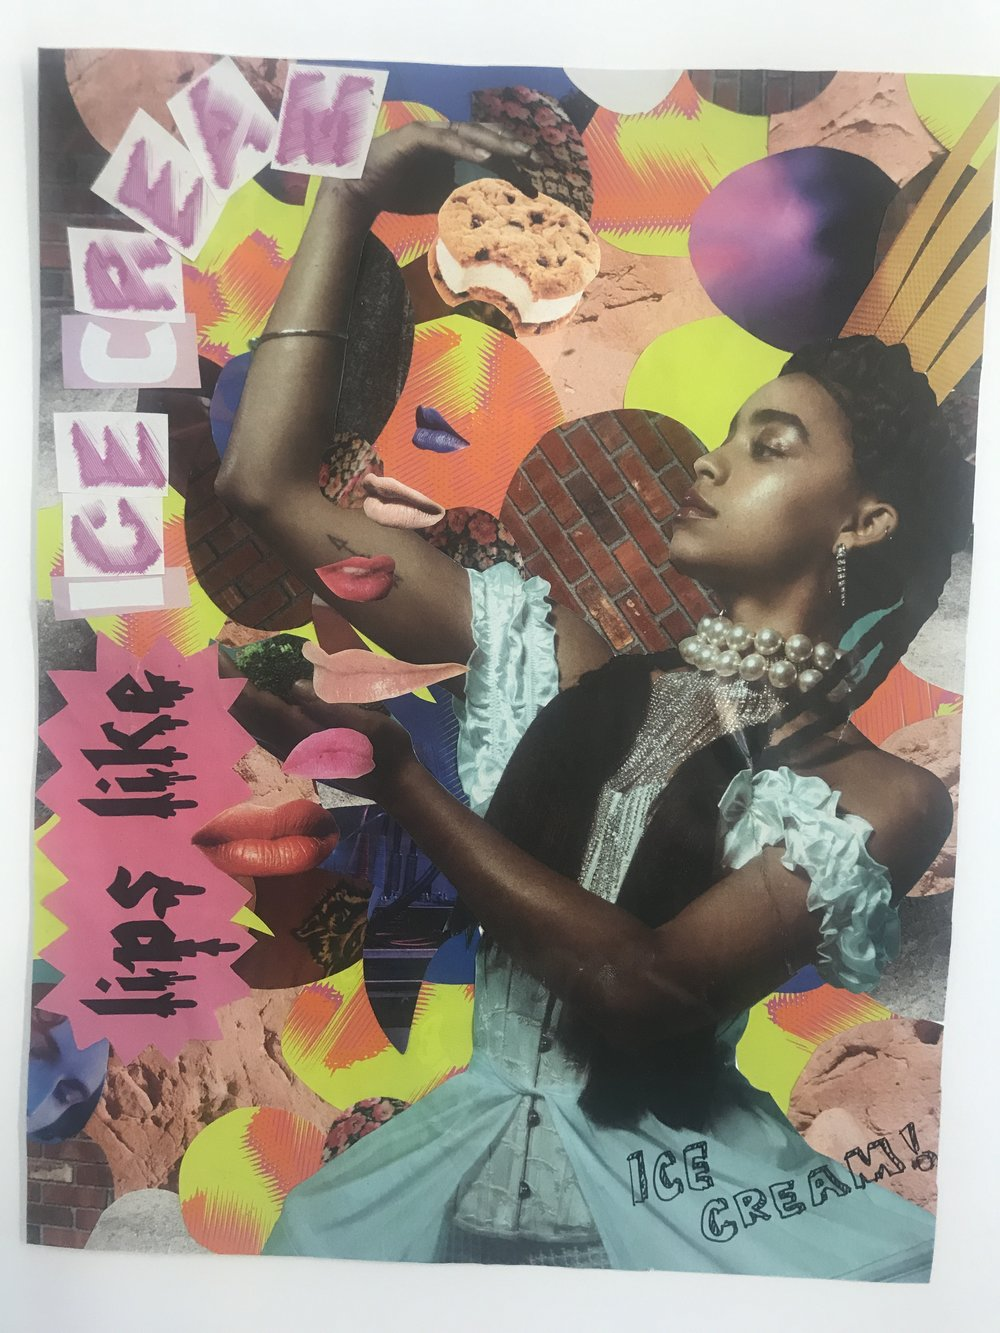 When an editor at Nylon Magazine expressed her love for ice cream, we nodded to  Nylon's love of collages  and sent one of our own. With plenty of Ice cream of course.